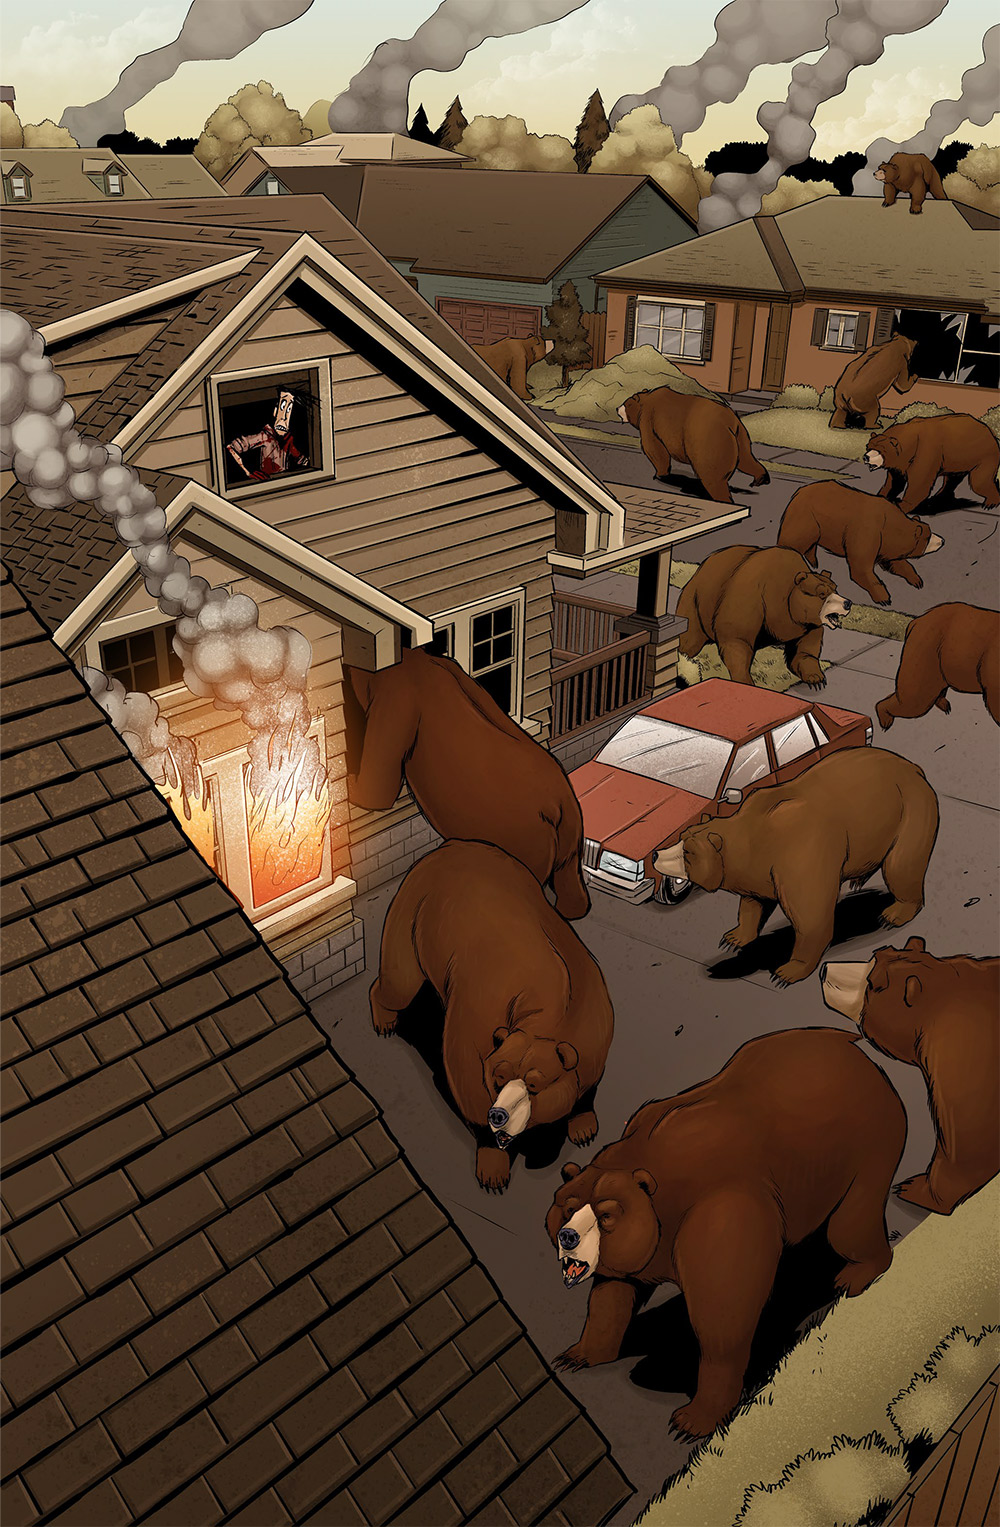 I want to make a side scrolling brawler called Streets of Bears where you walk around and fight bears with your fists.